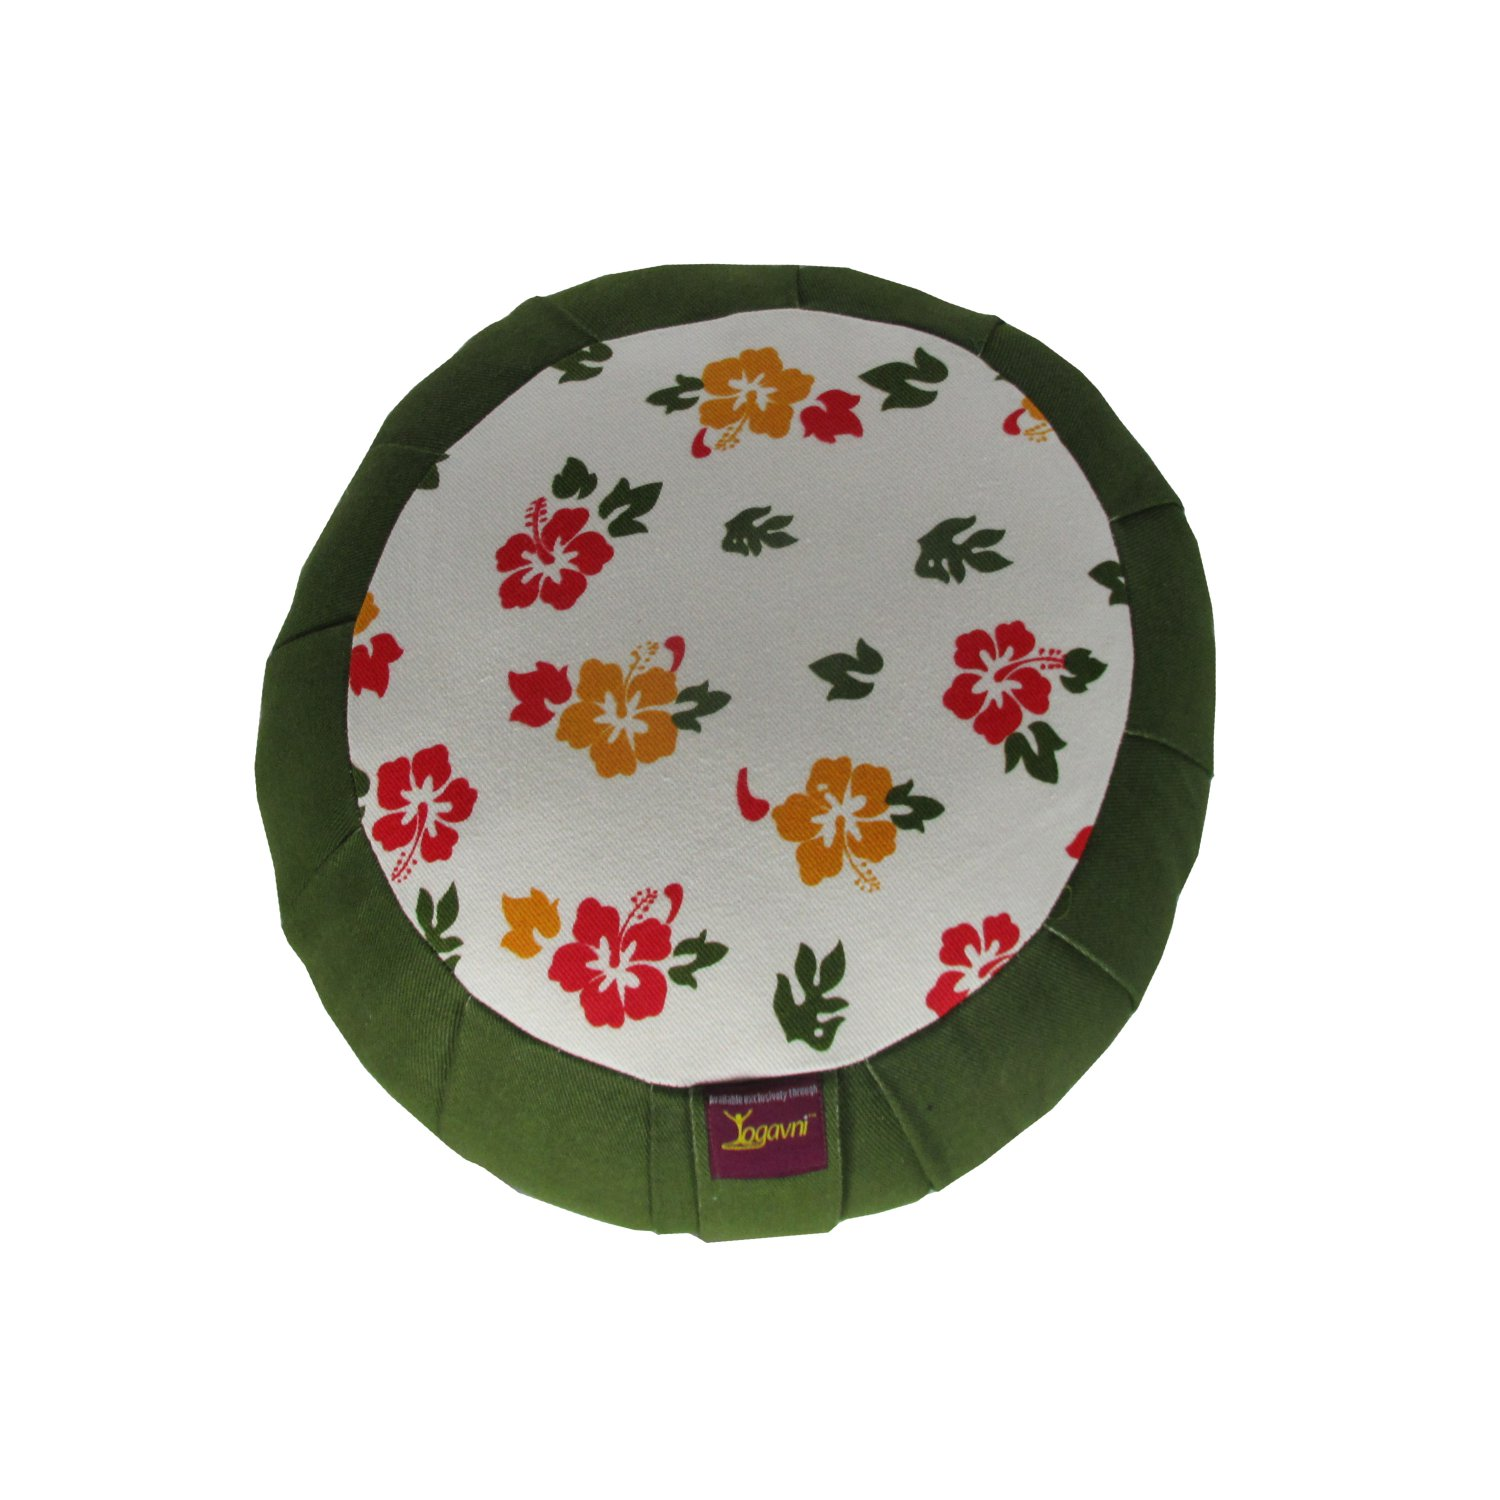 Round Meditation Zafu with Flower Print